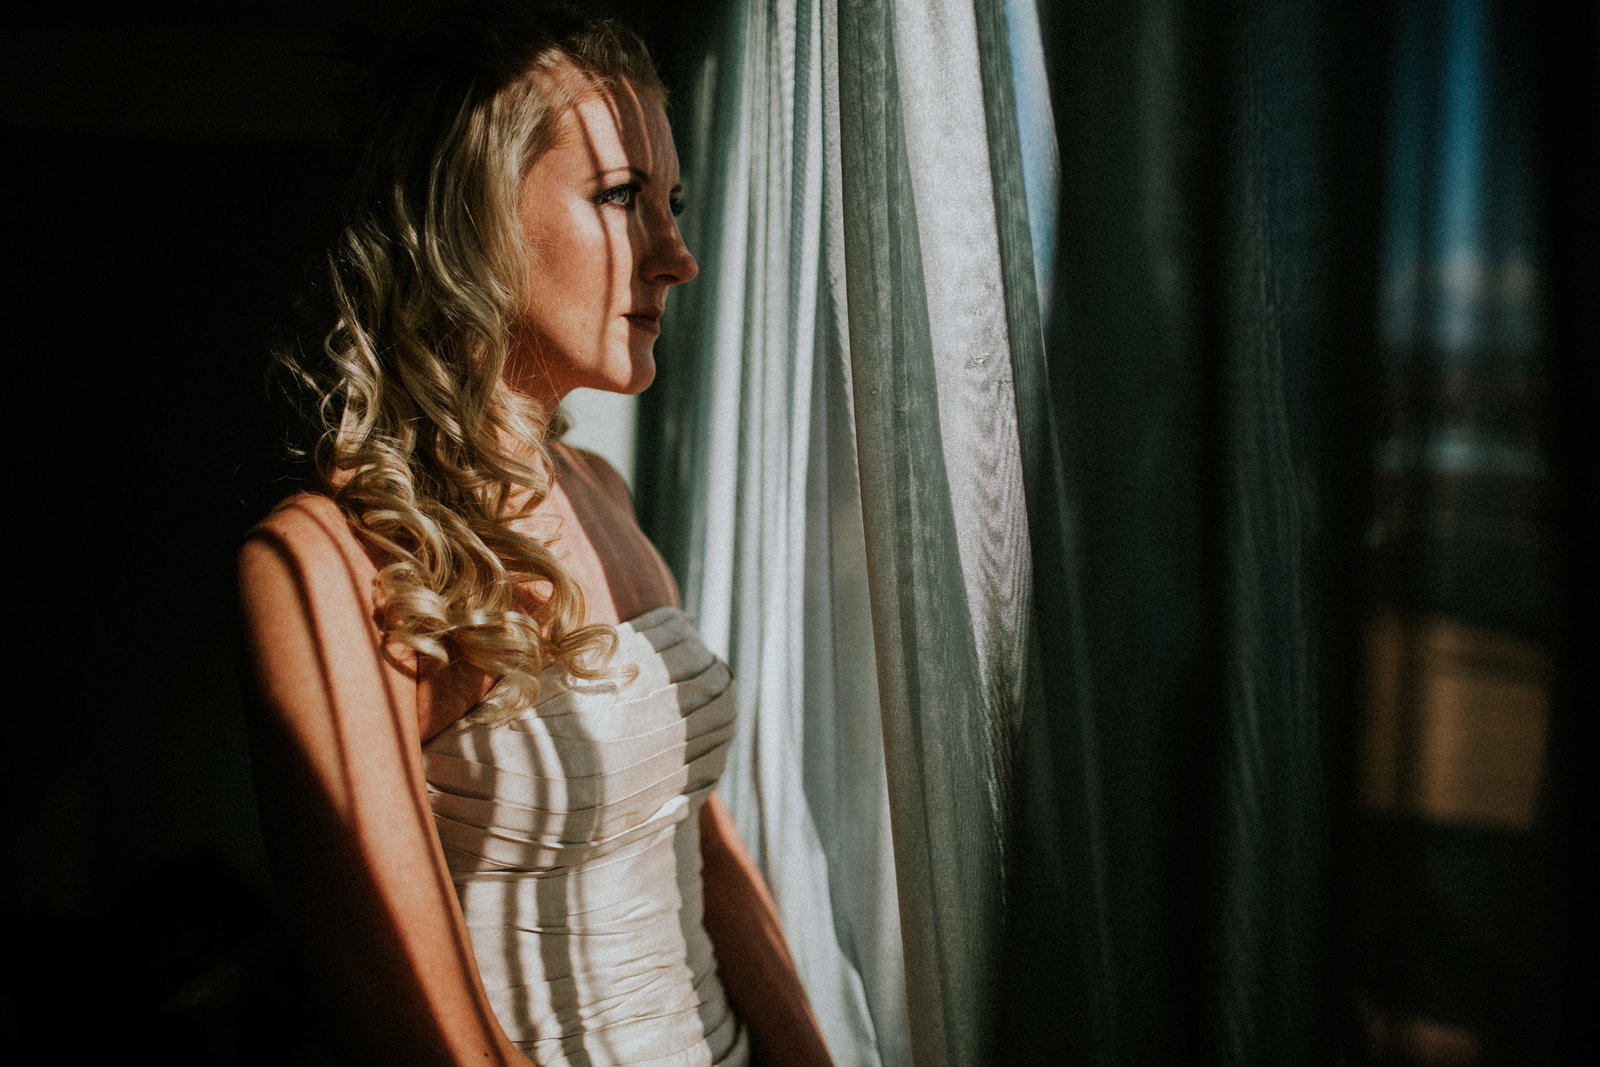 Bride stood looking out of window - Lancaster Wedding Photographer Jono Symonds